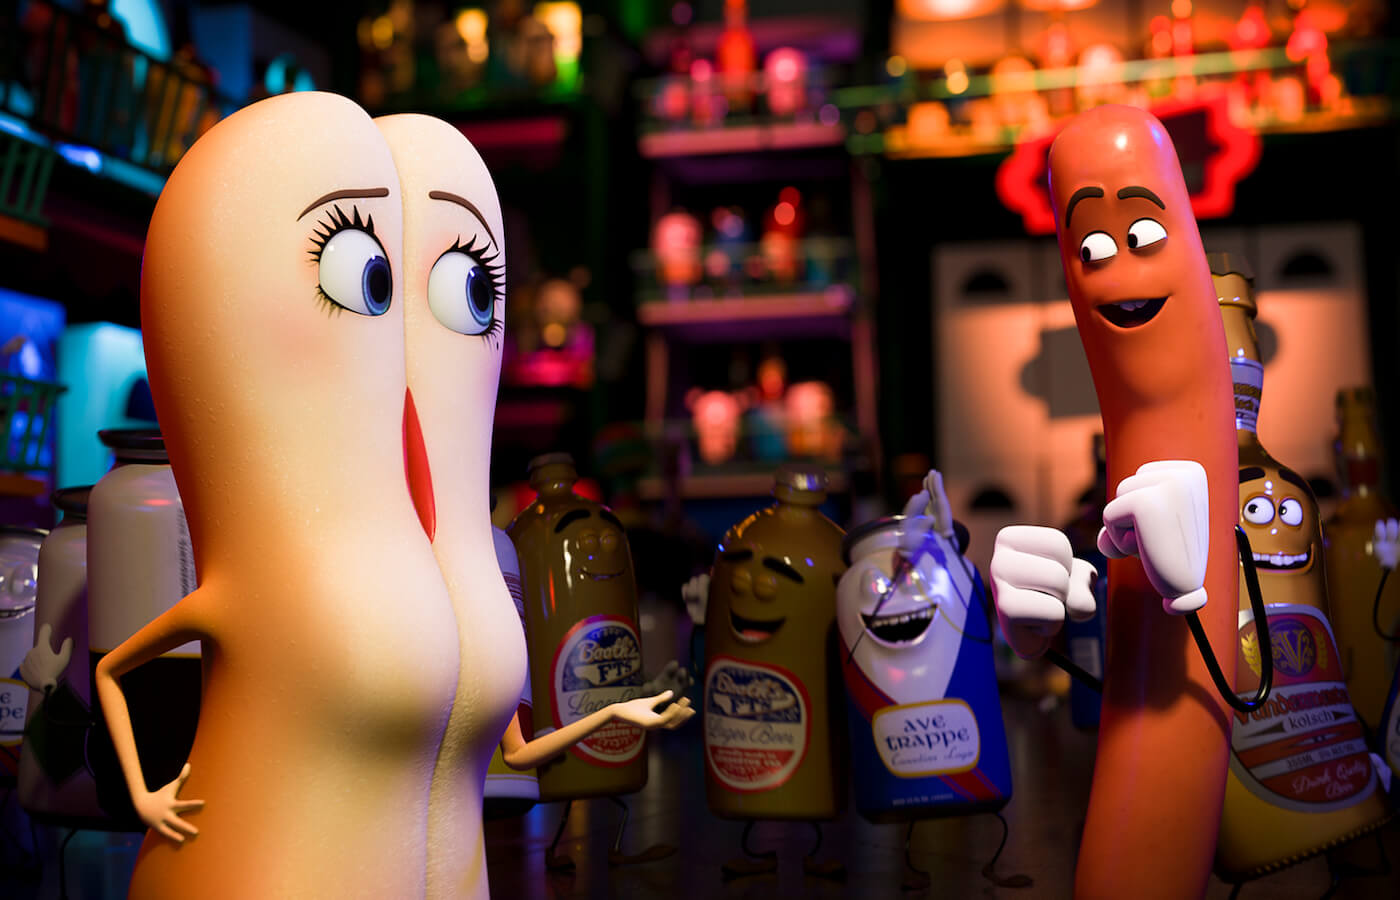 sausage-party-image.jpg